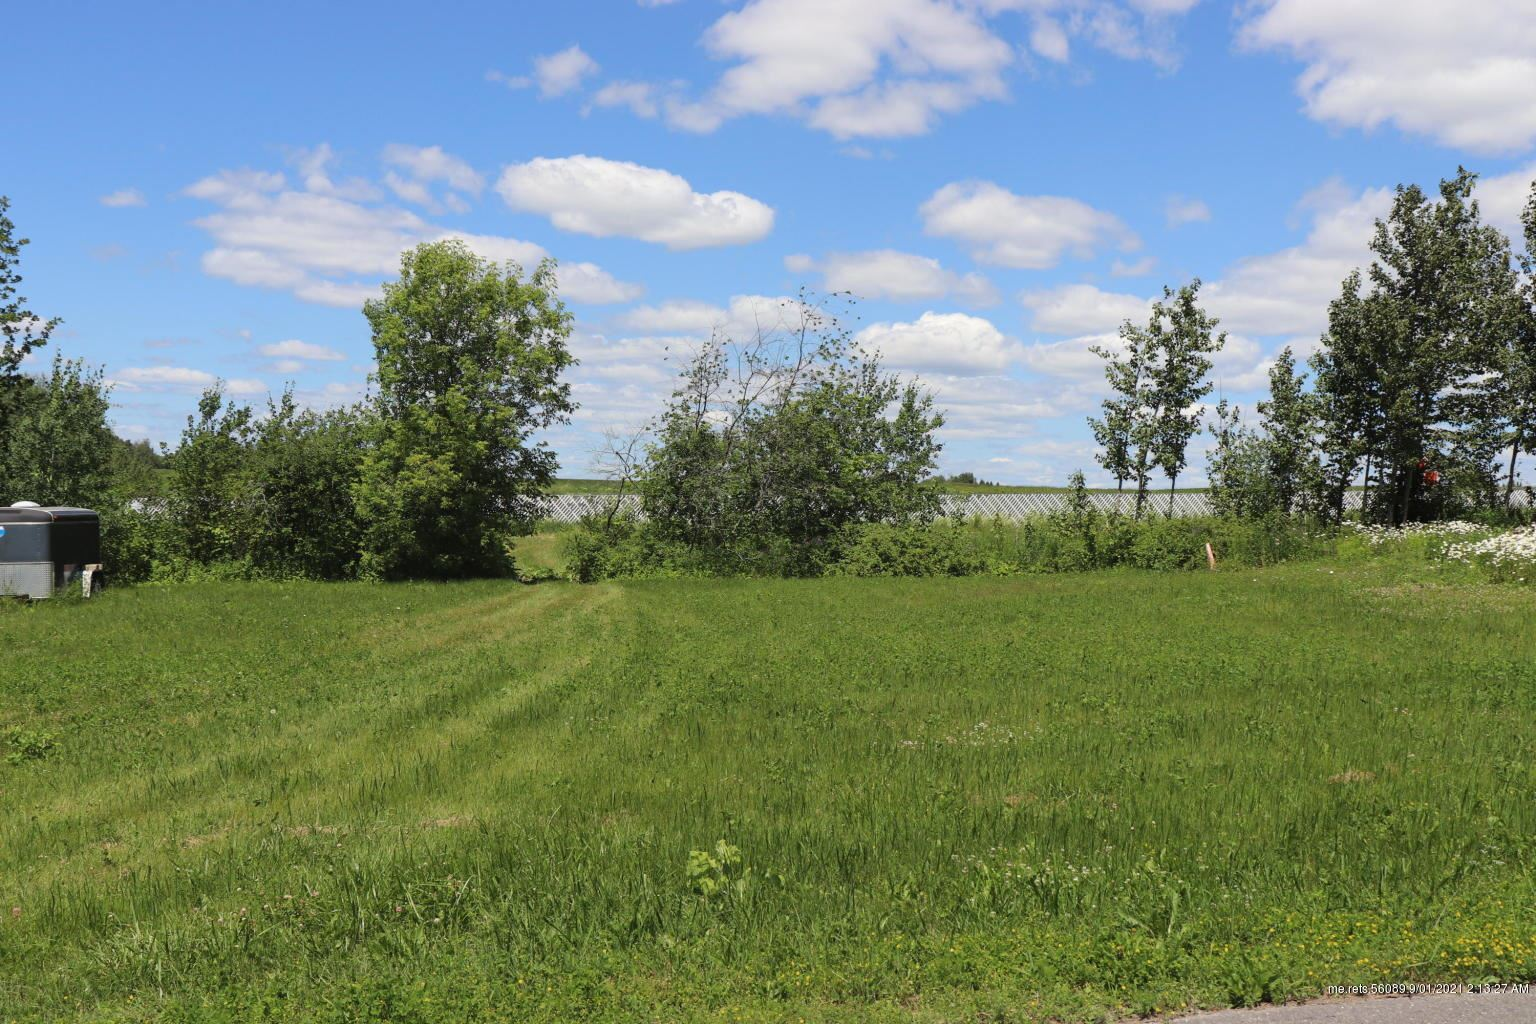 Photo of Lot 18 &19 Country Road, Caribou, ME 04736 (MLS # 1507126)